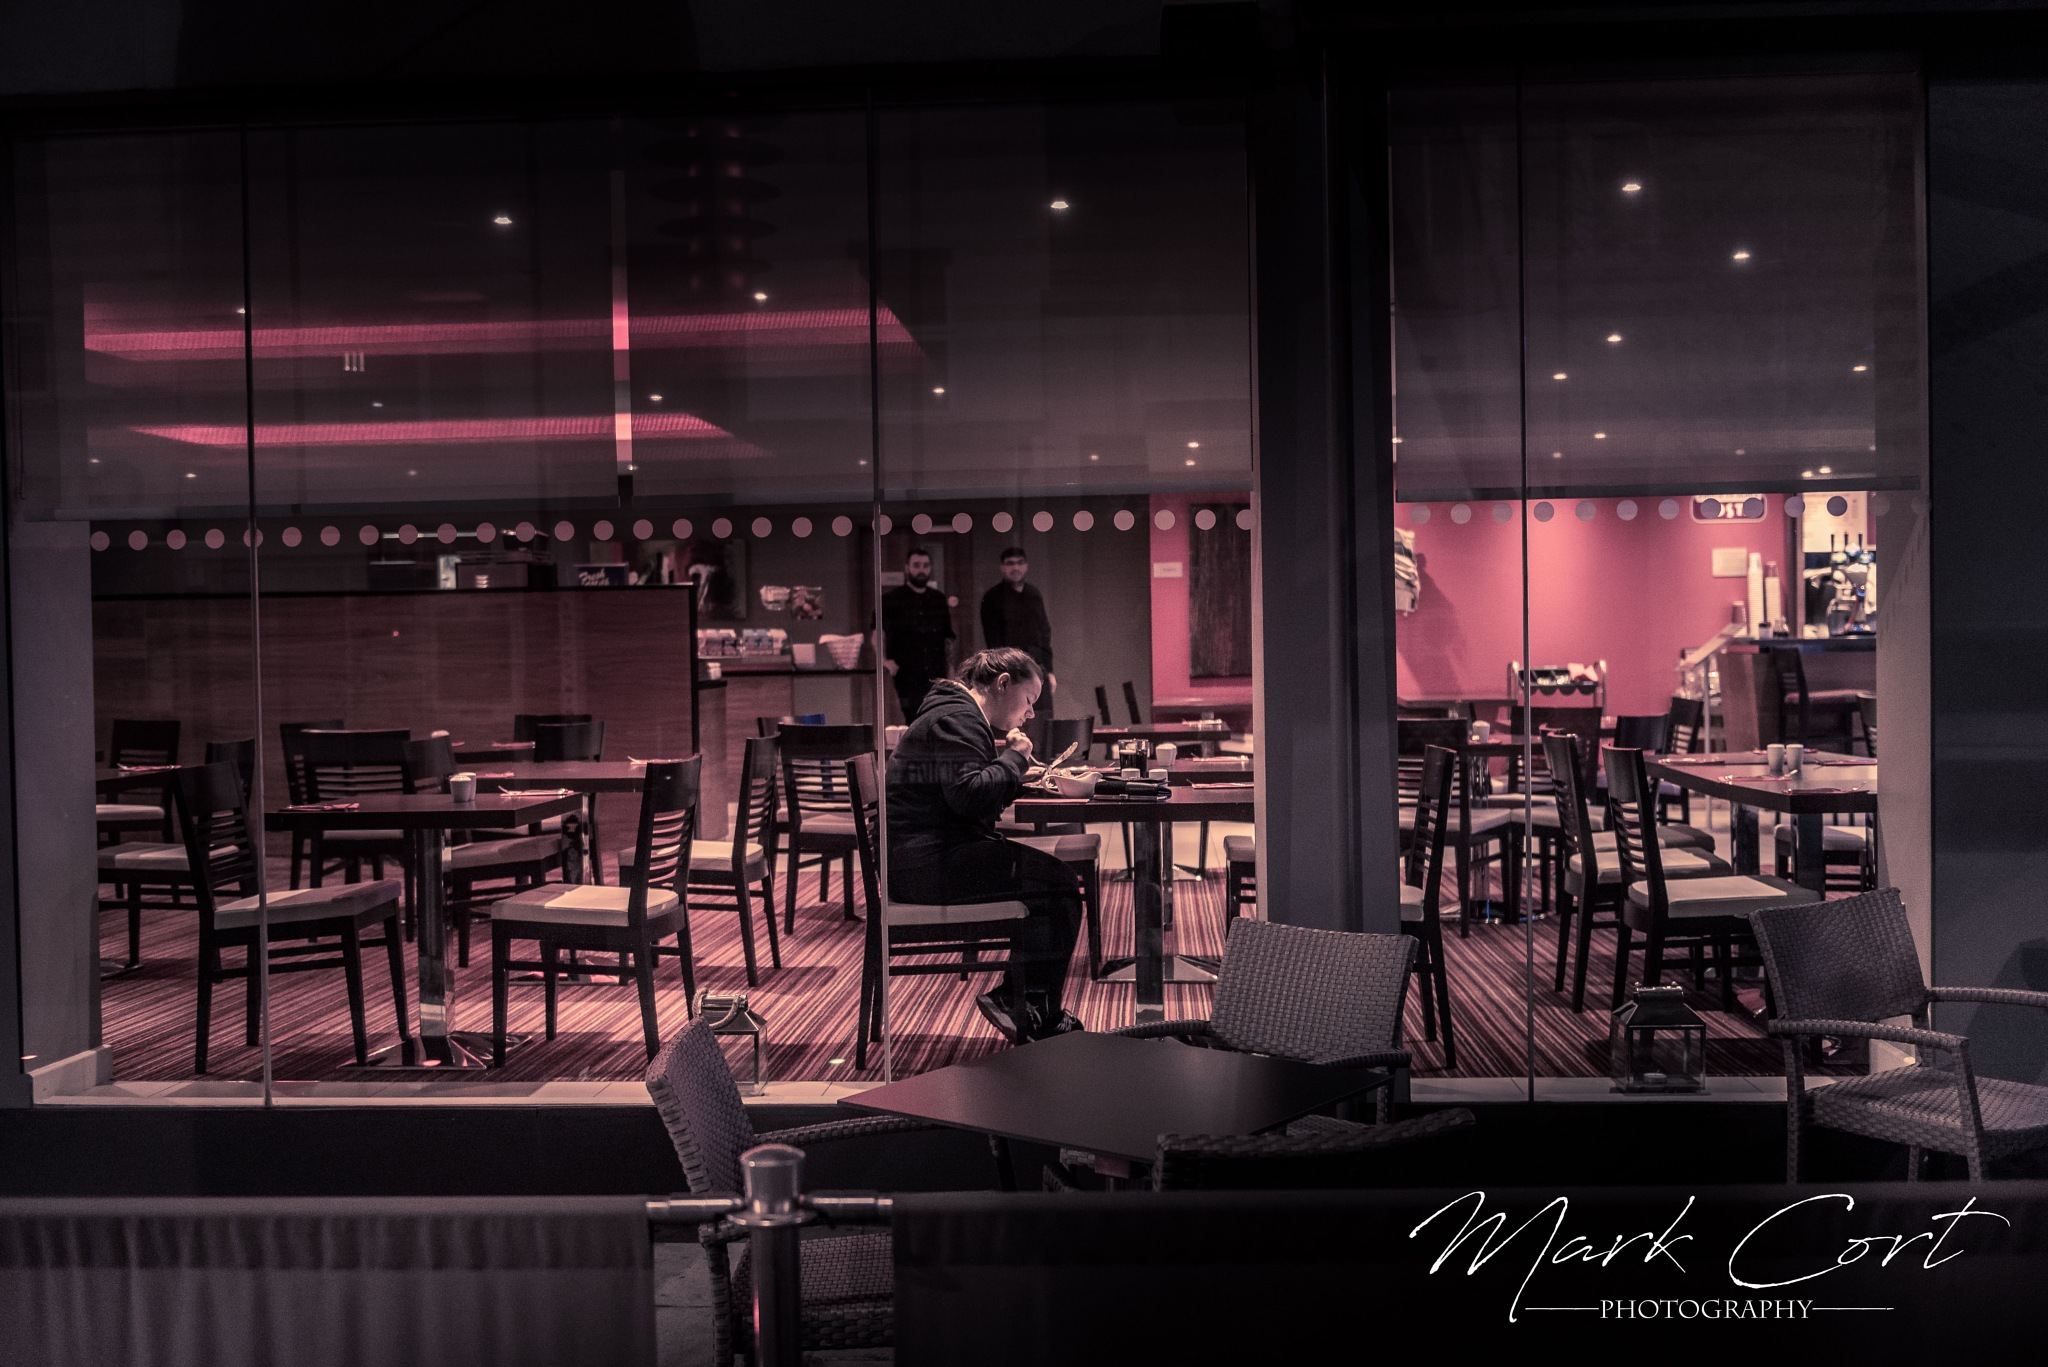 Alone I Eat by Mark Cort